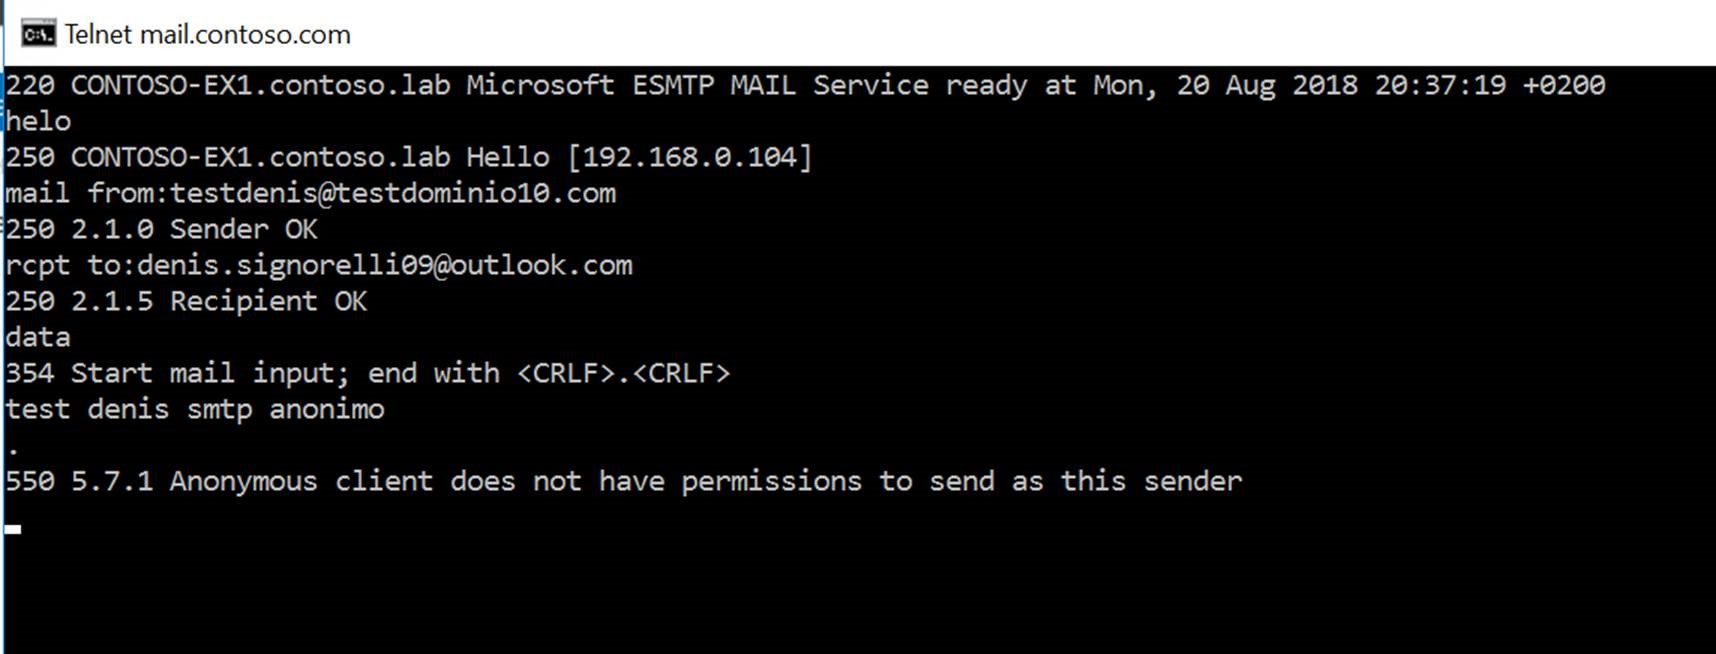 Ms-Exch-SMTP-Accept-Any-Sender